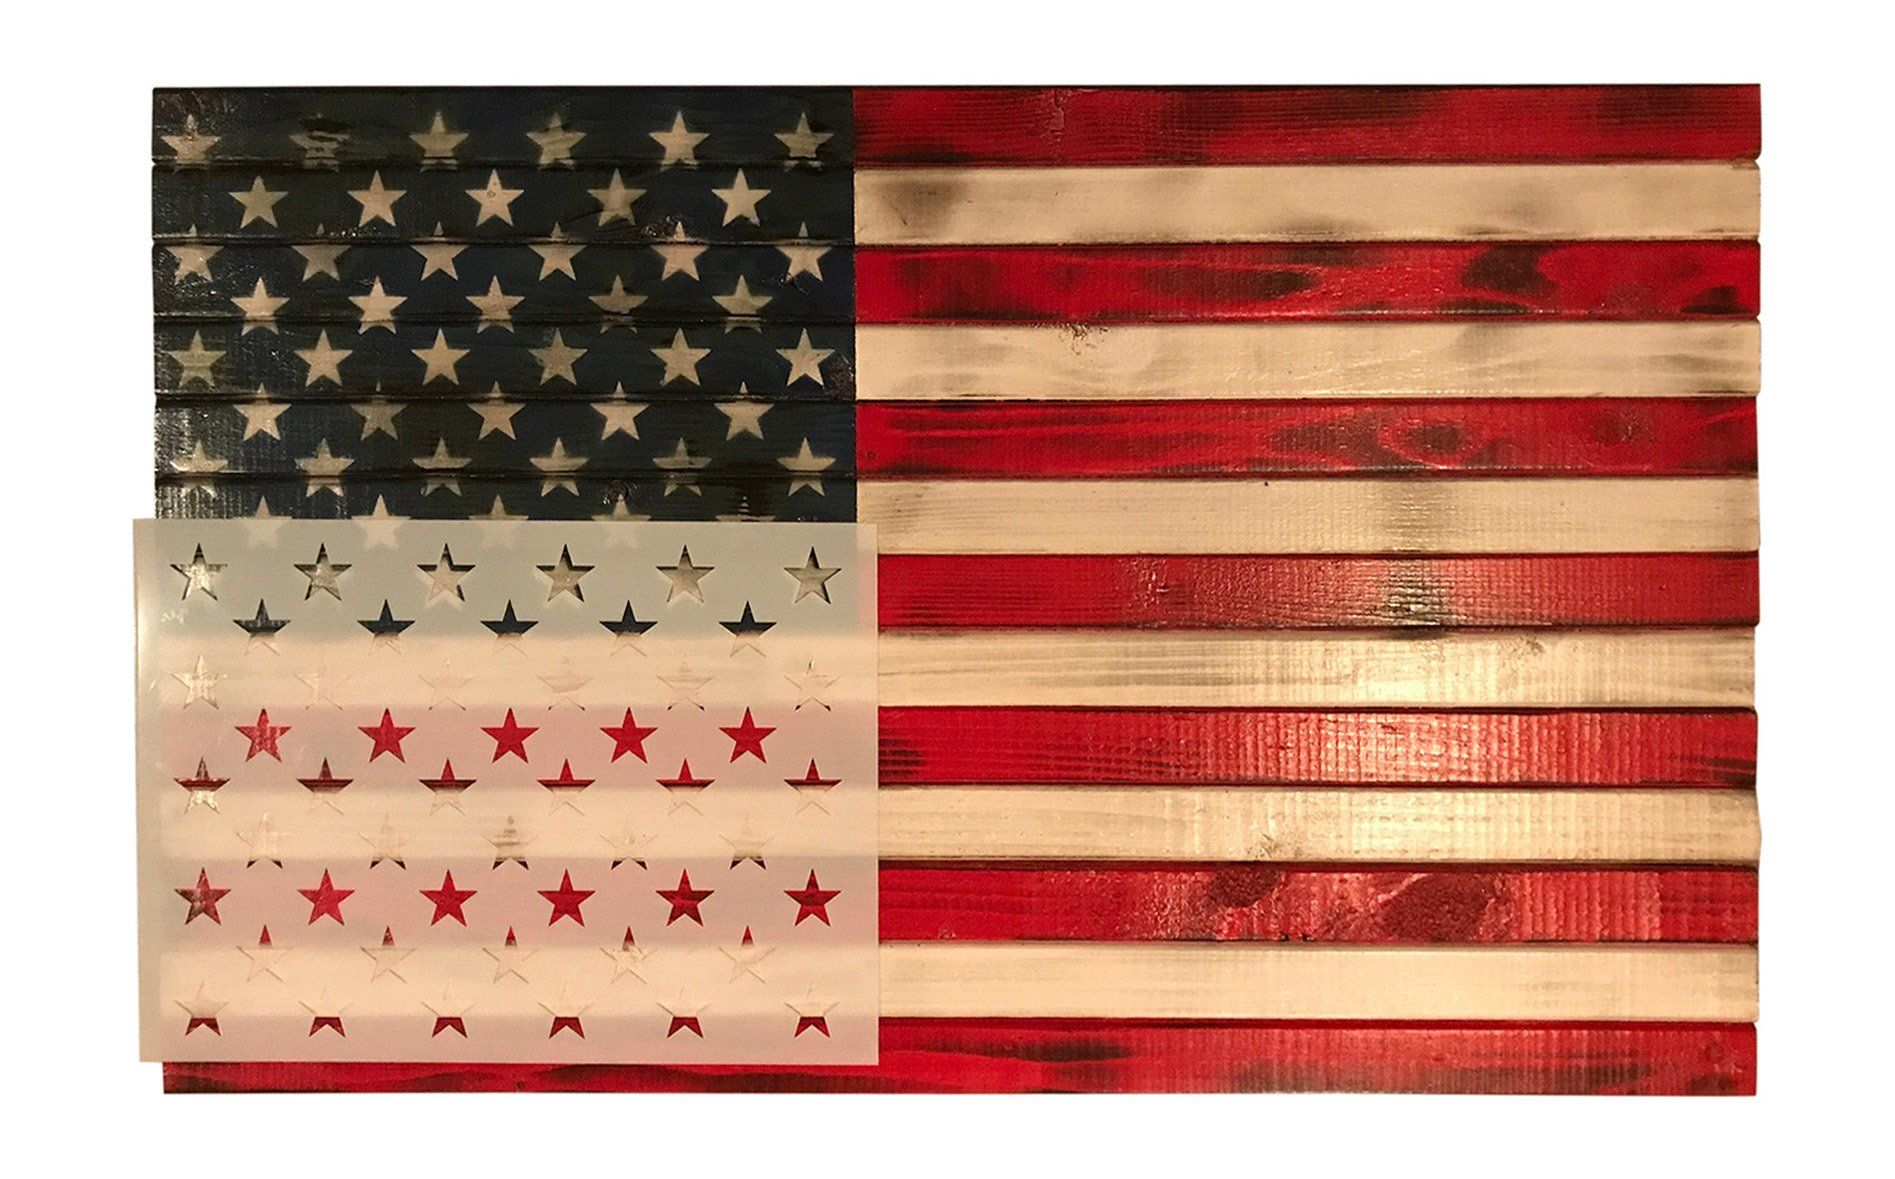 Pin By Shawn Mudd On American Flag In 2020 American Flag Wood Stencils Wall Star Stencil